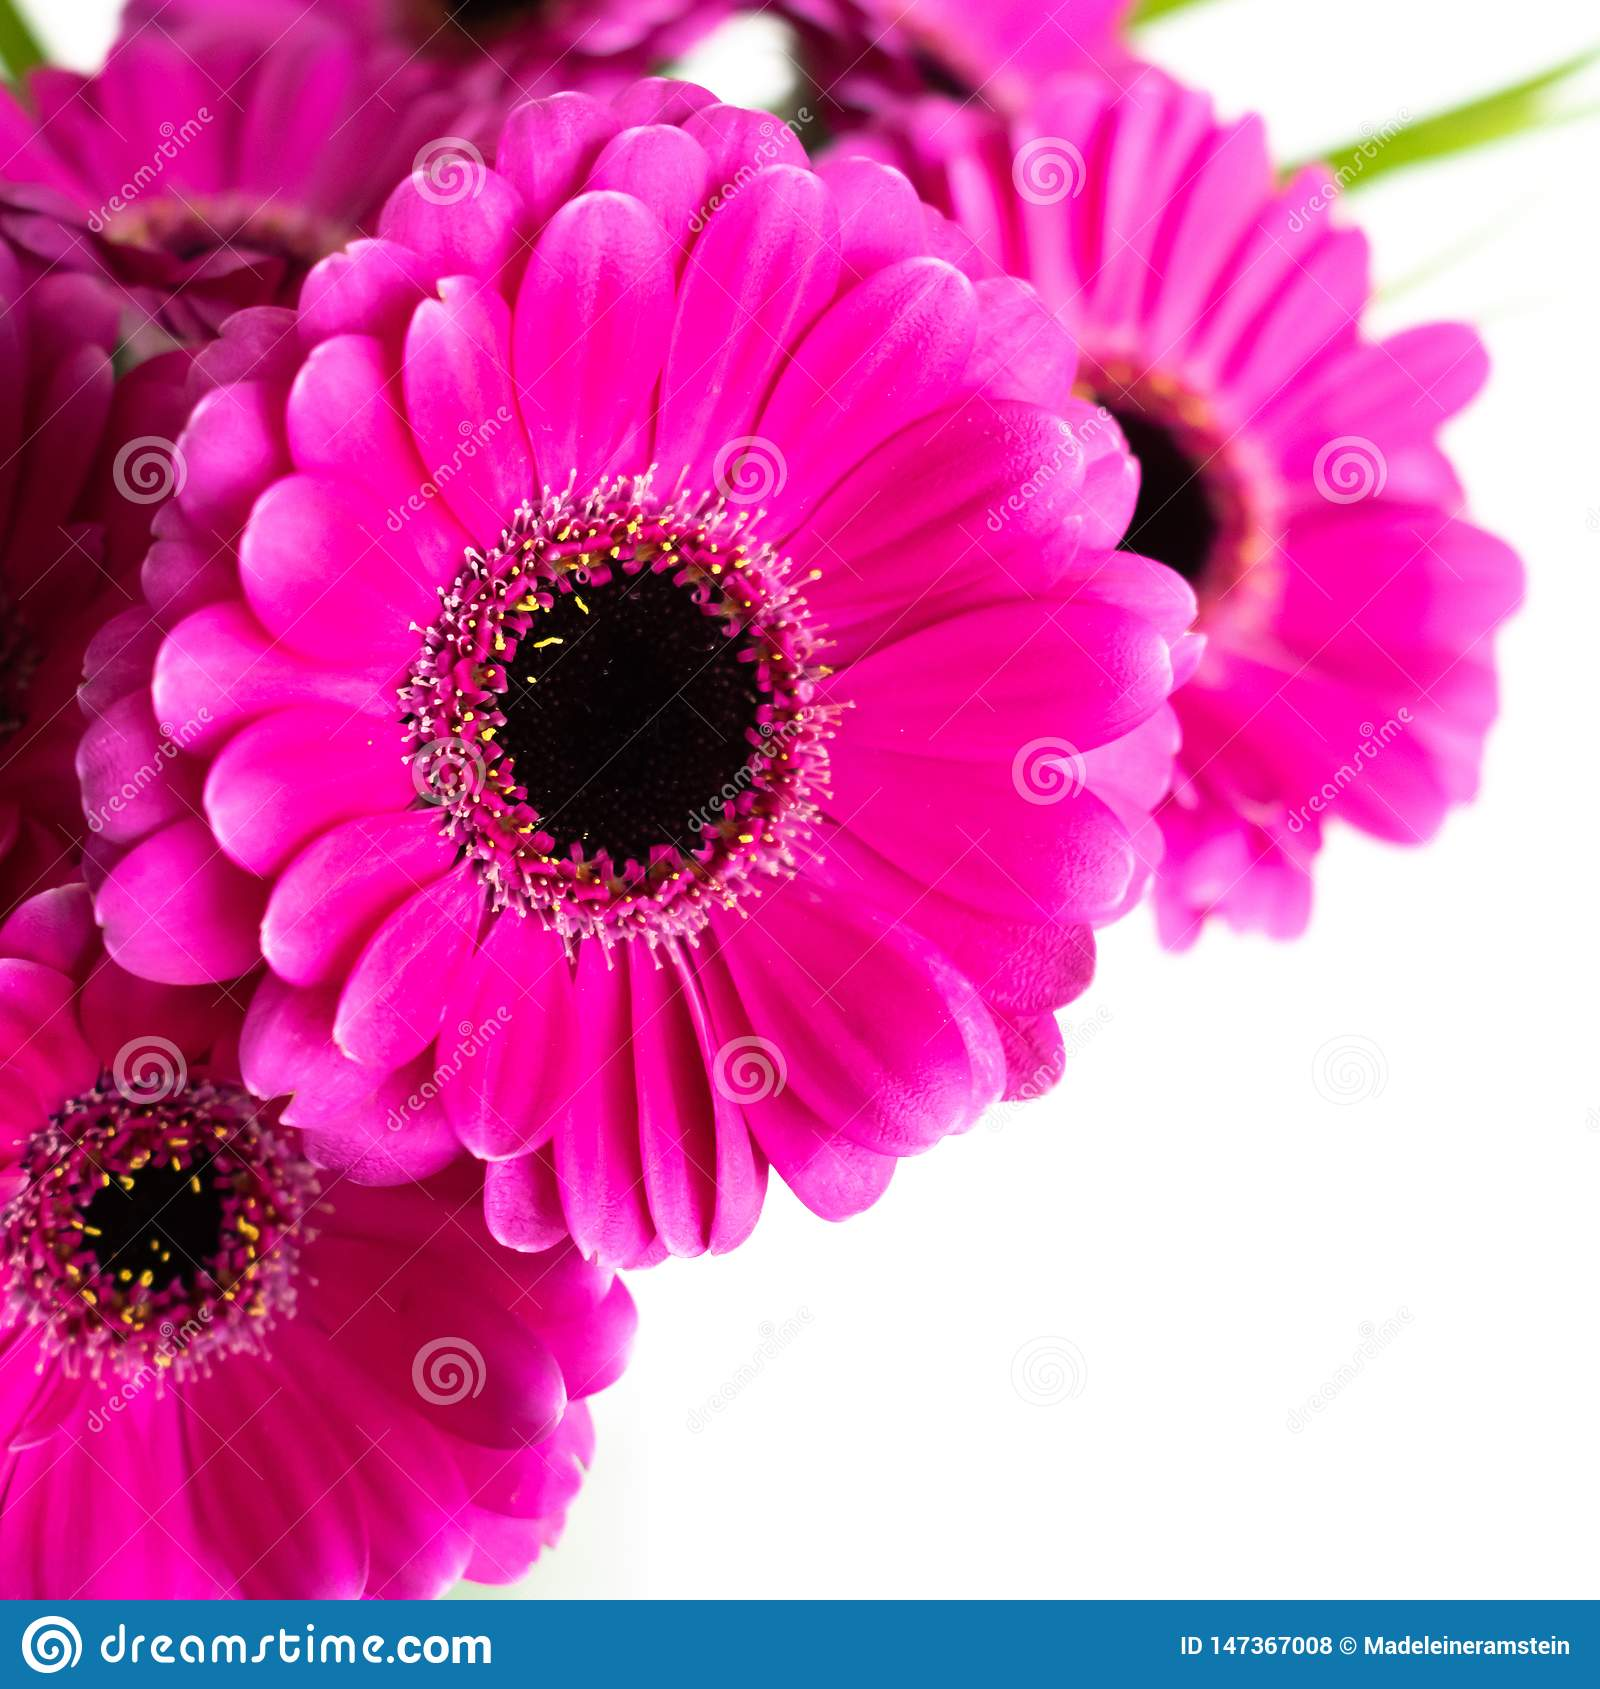 Pink/purple/violette Gerbera flower bouquet. Indoors with white background.